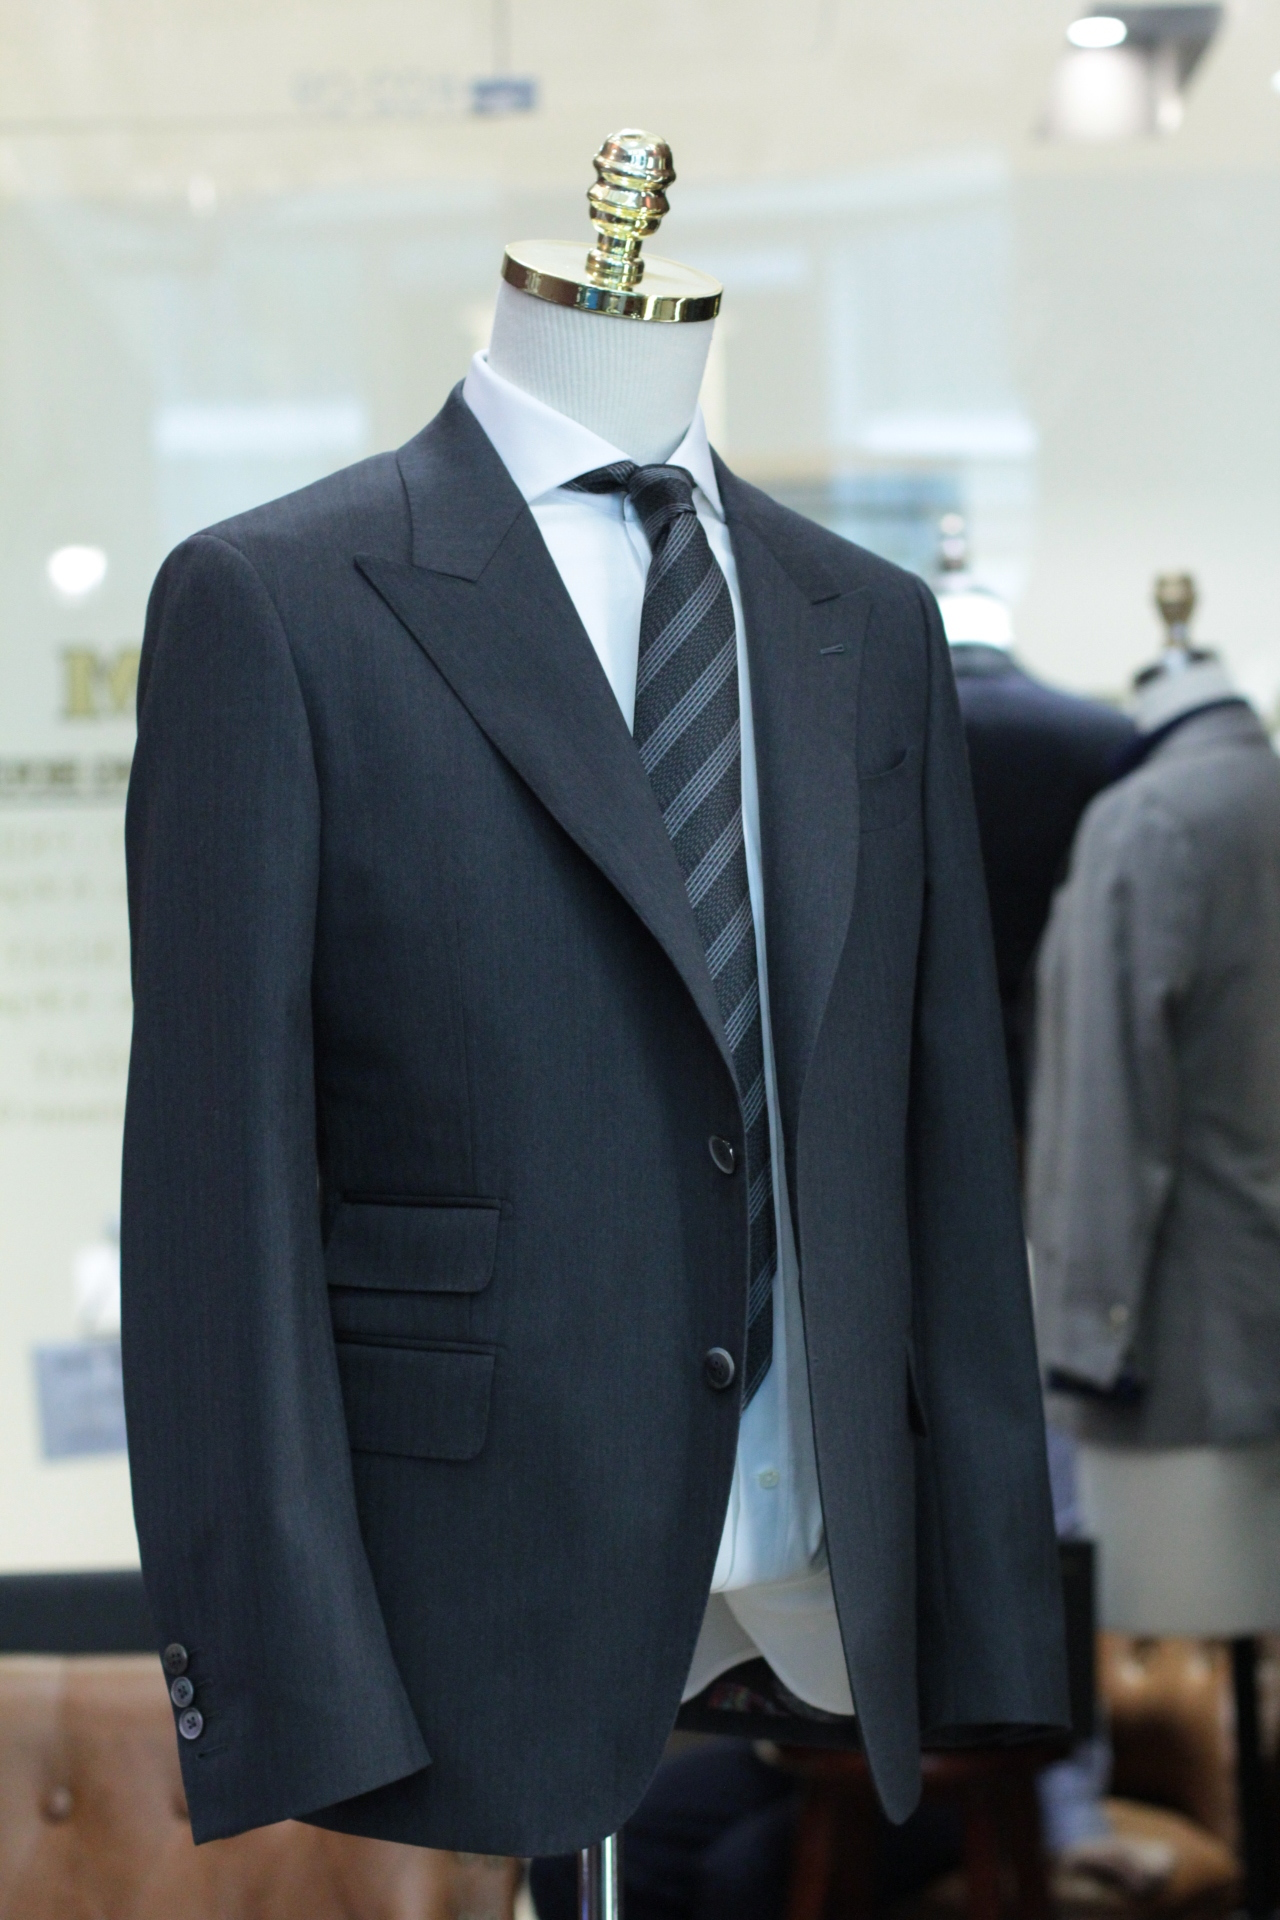 The Teller MADE SUITS Guabello Grey Herringbone Suits | Tailor Made Suits Singapore